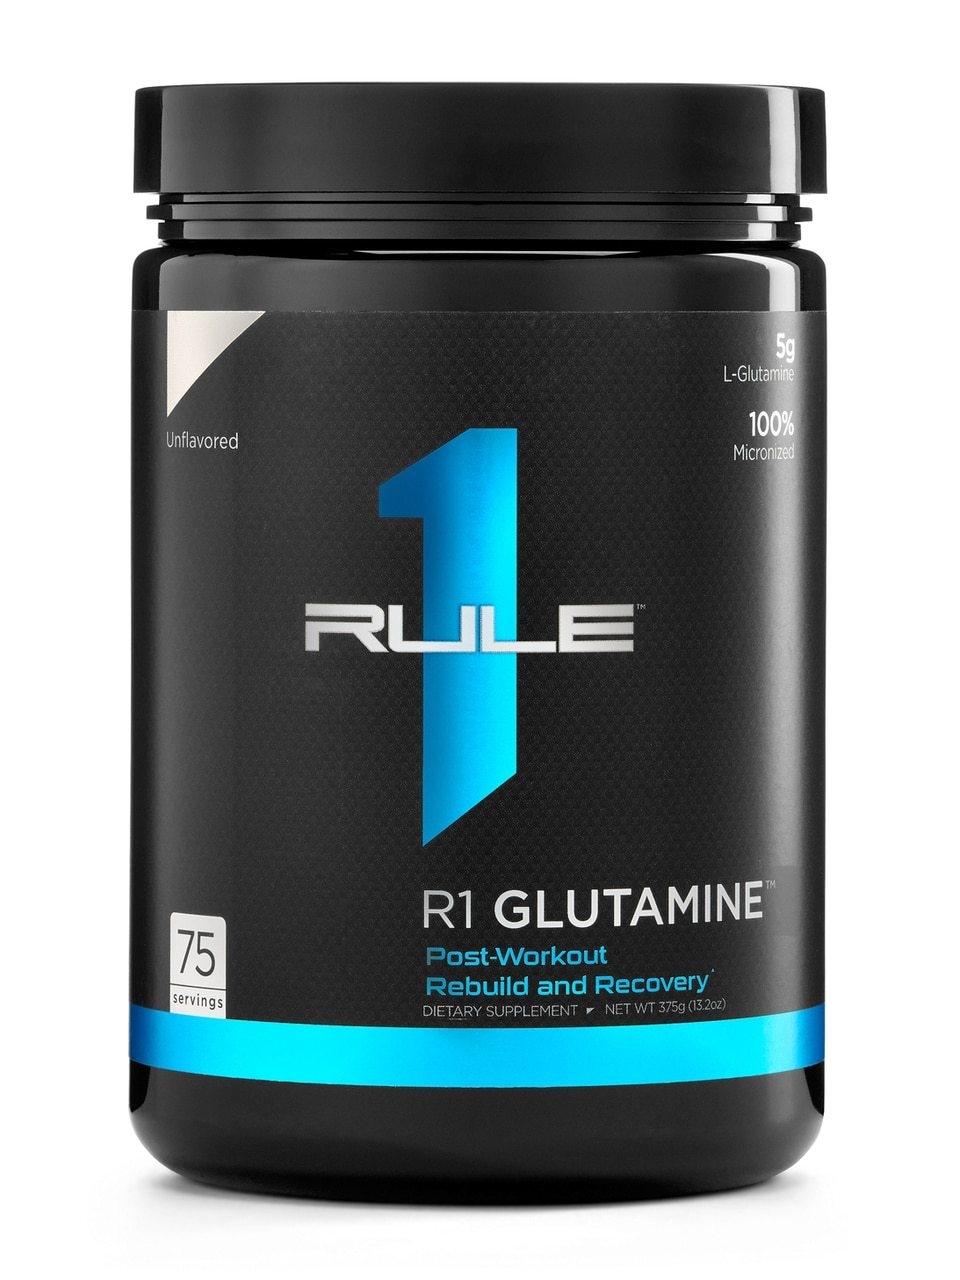 Rule1 - Glutamine